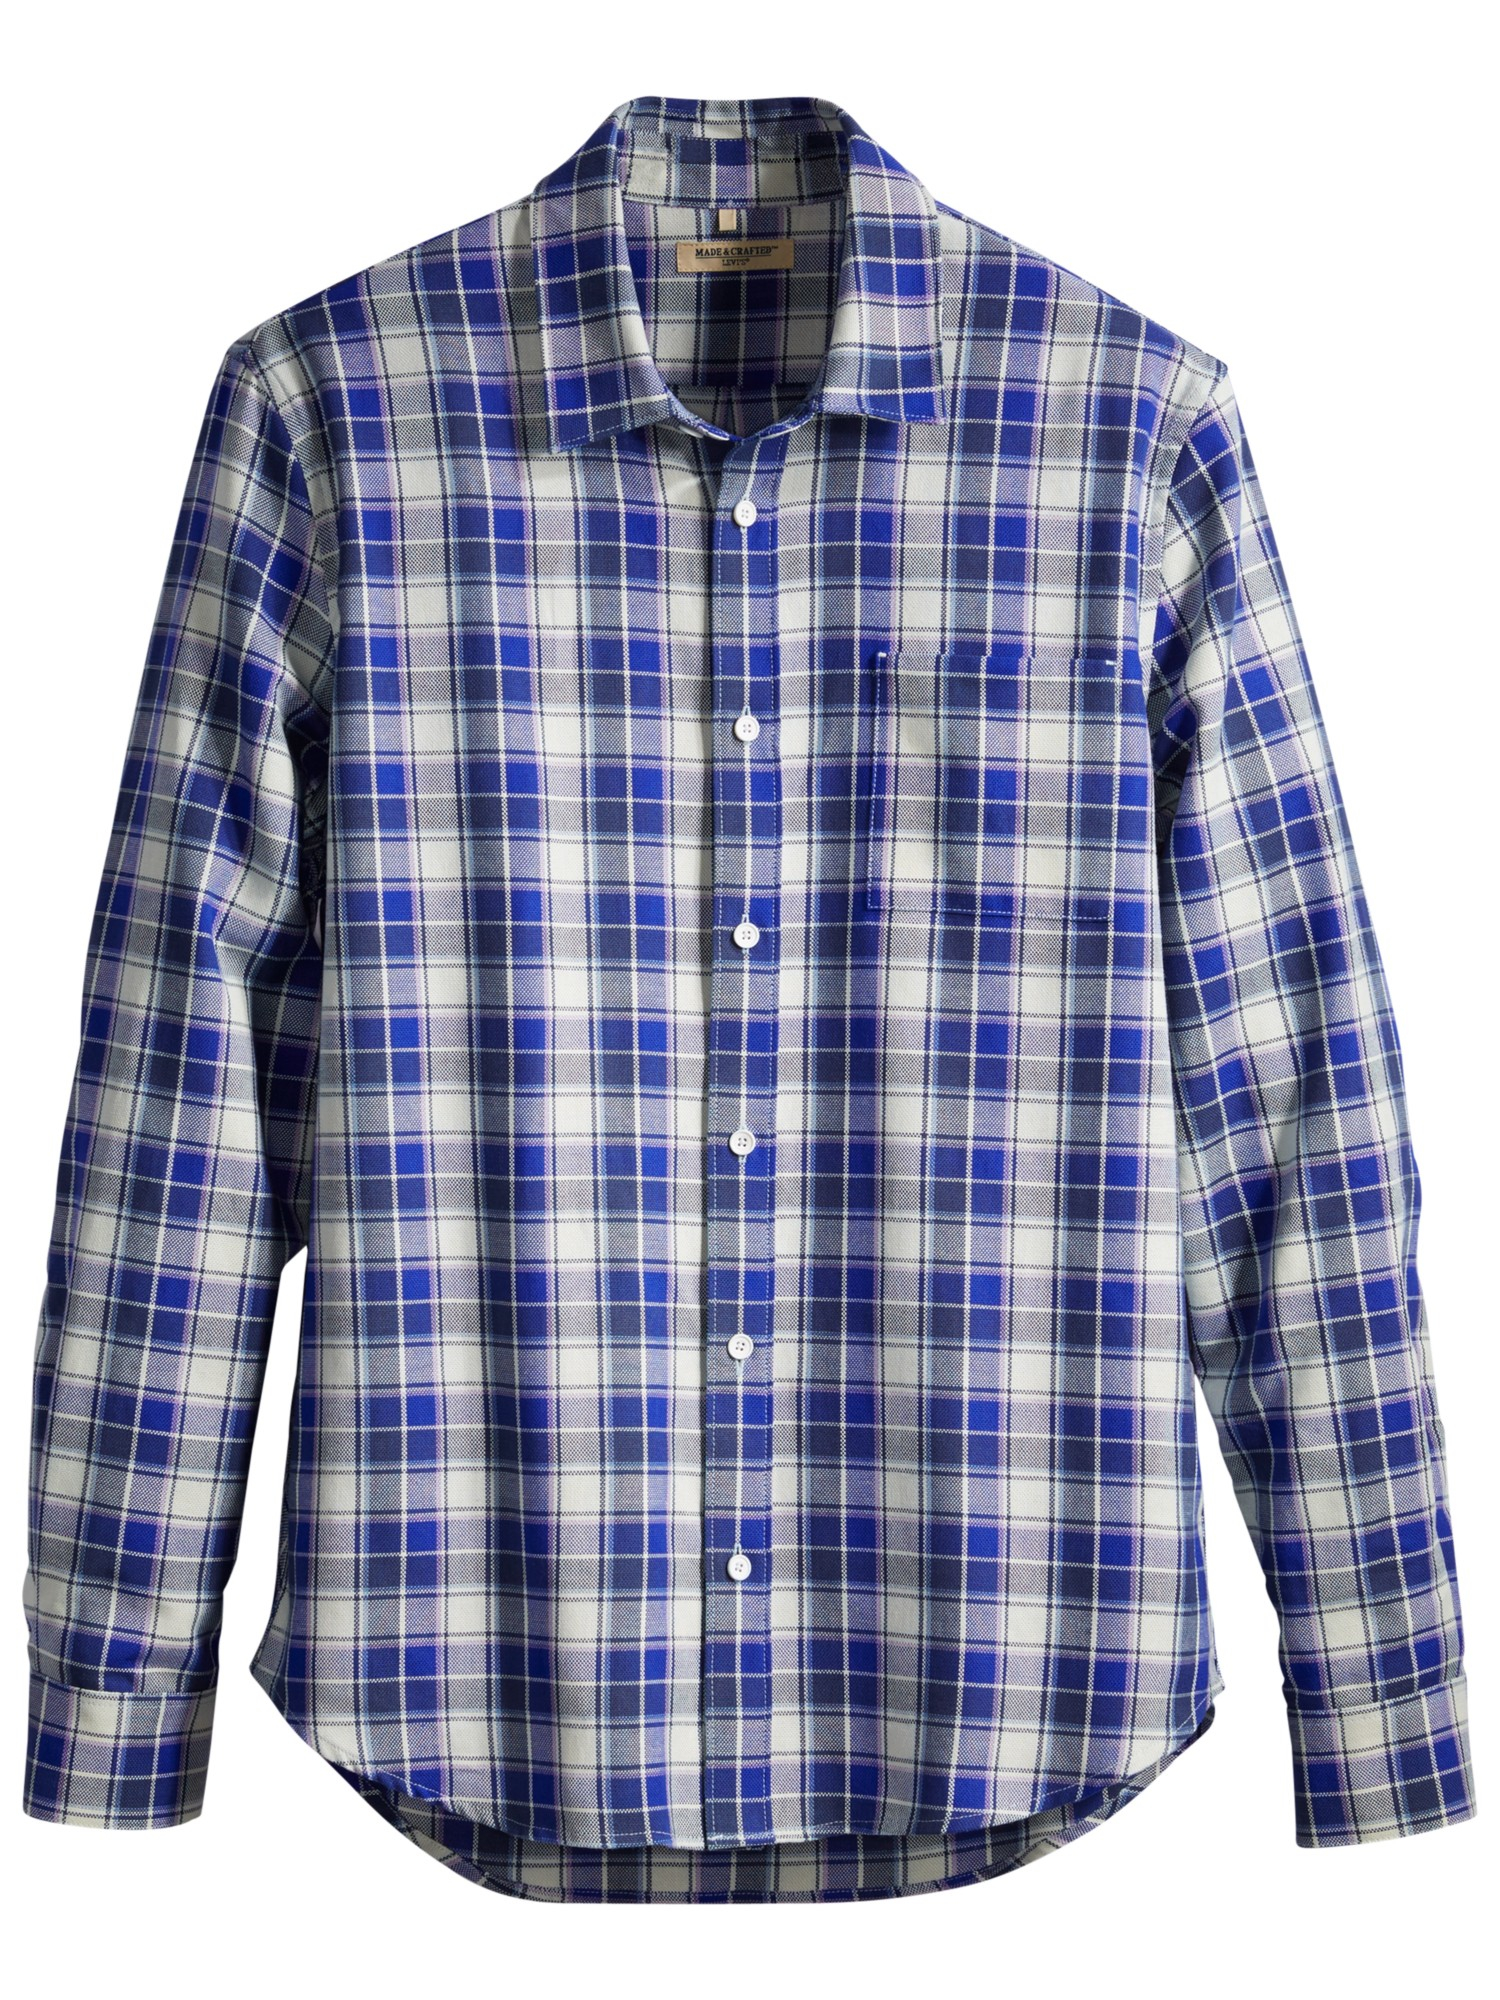 Lyst levi 39 s made crafted shirt in blue for men for Levis made and crafted shirt